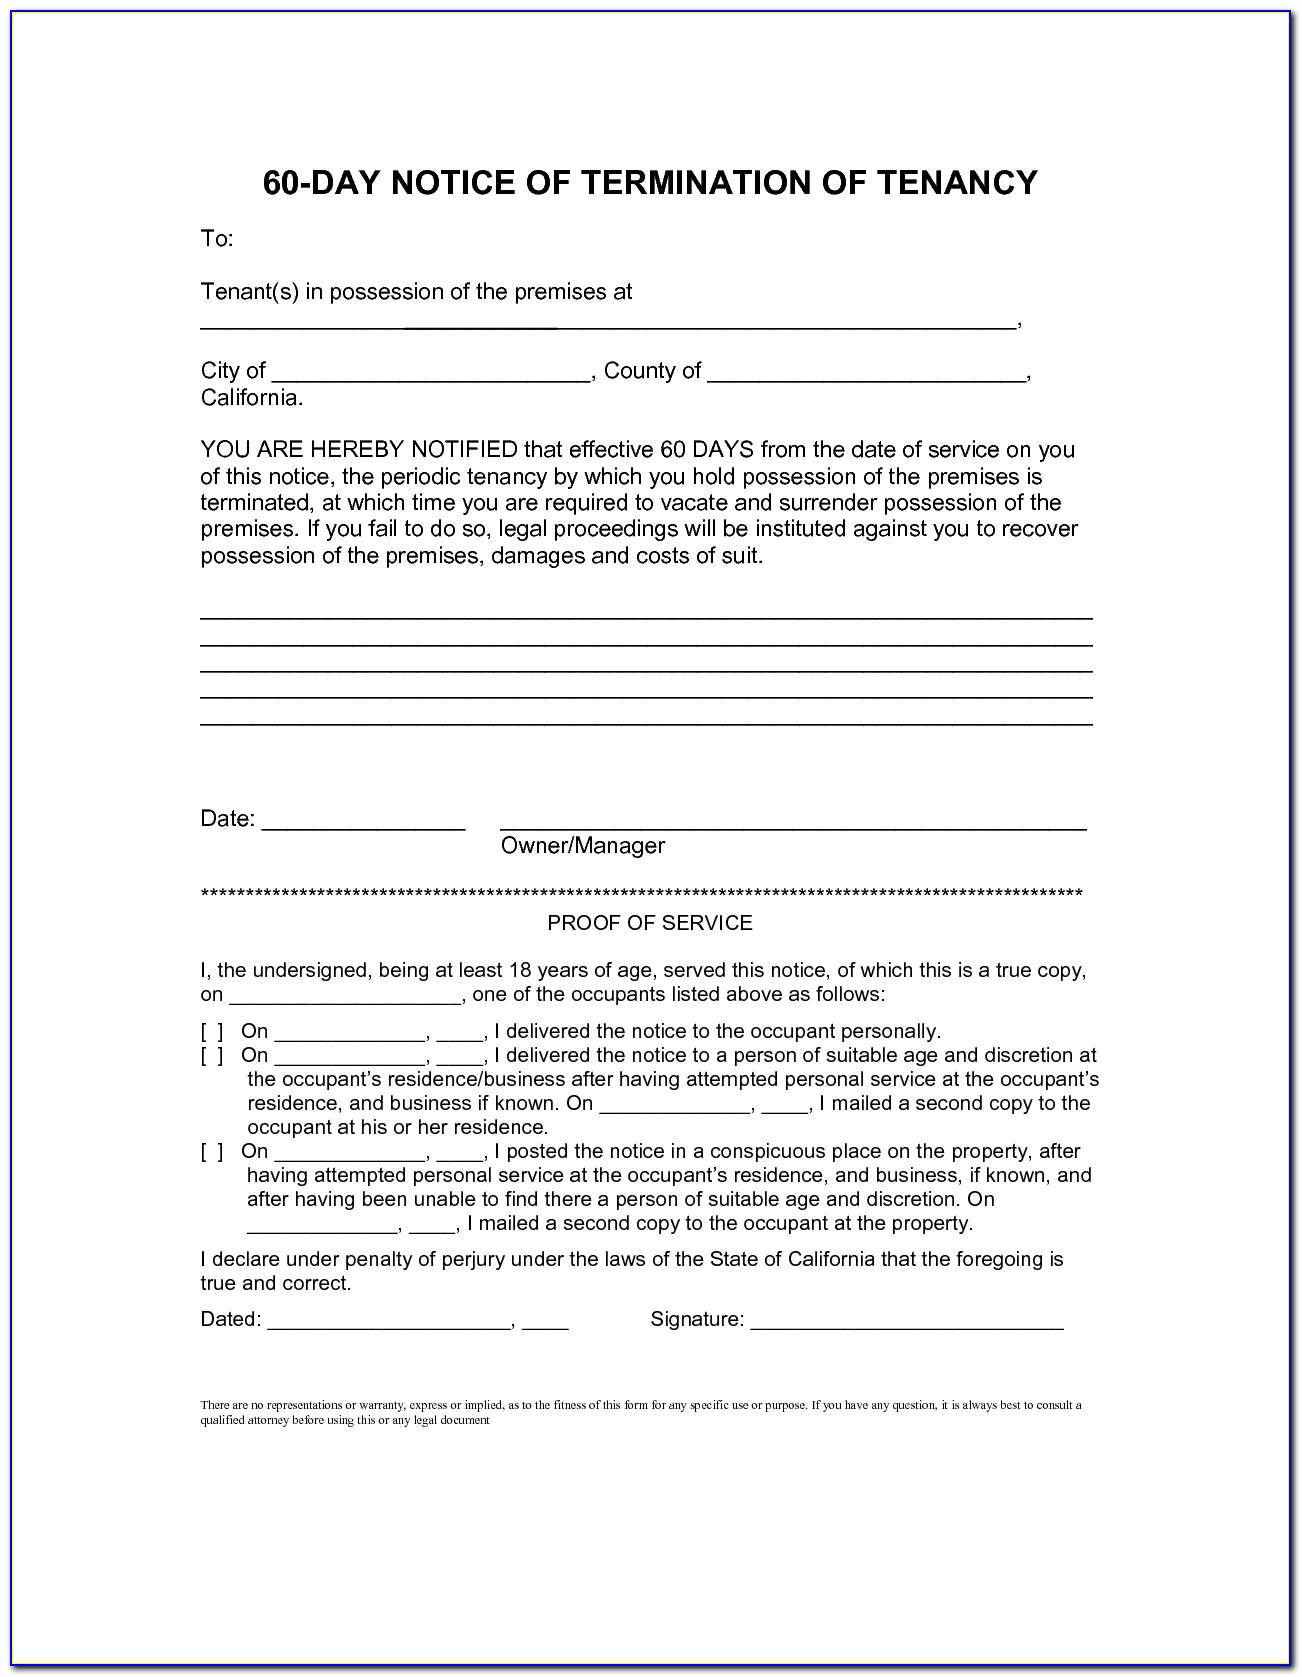 Eviction Notice Letter Free Download Ledger Form Proposal Template With 60 Day Notice To Vacate Template 2018